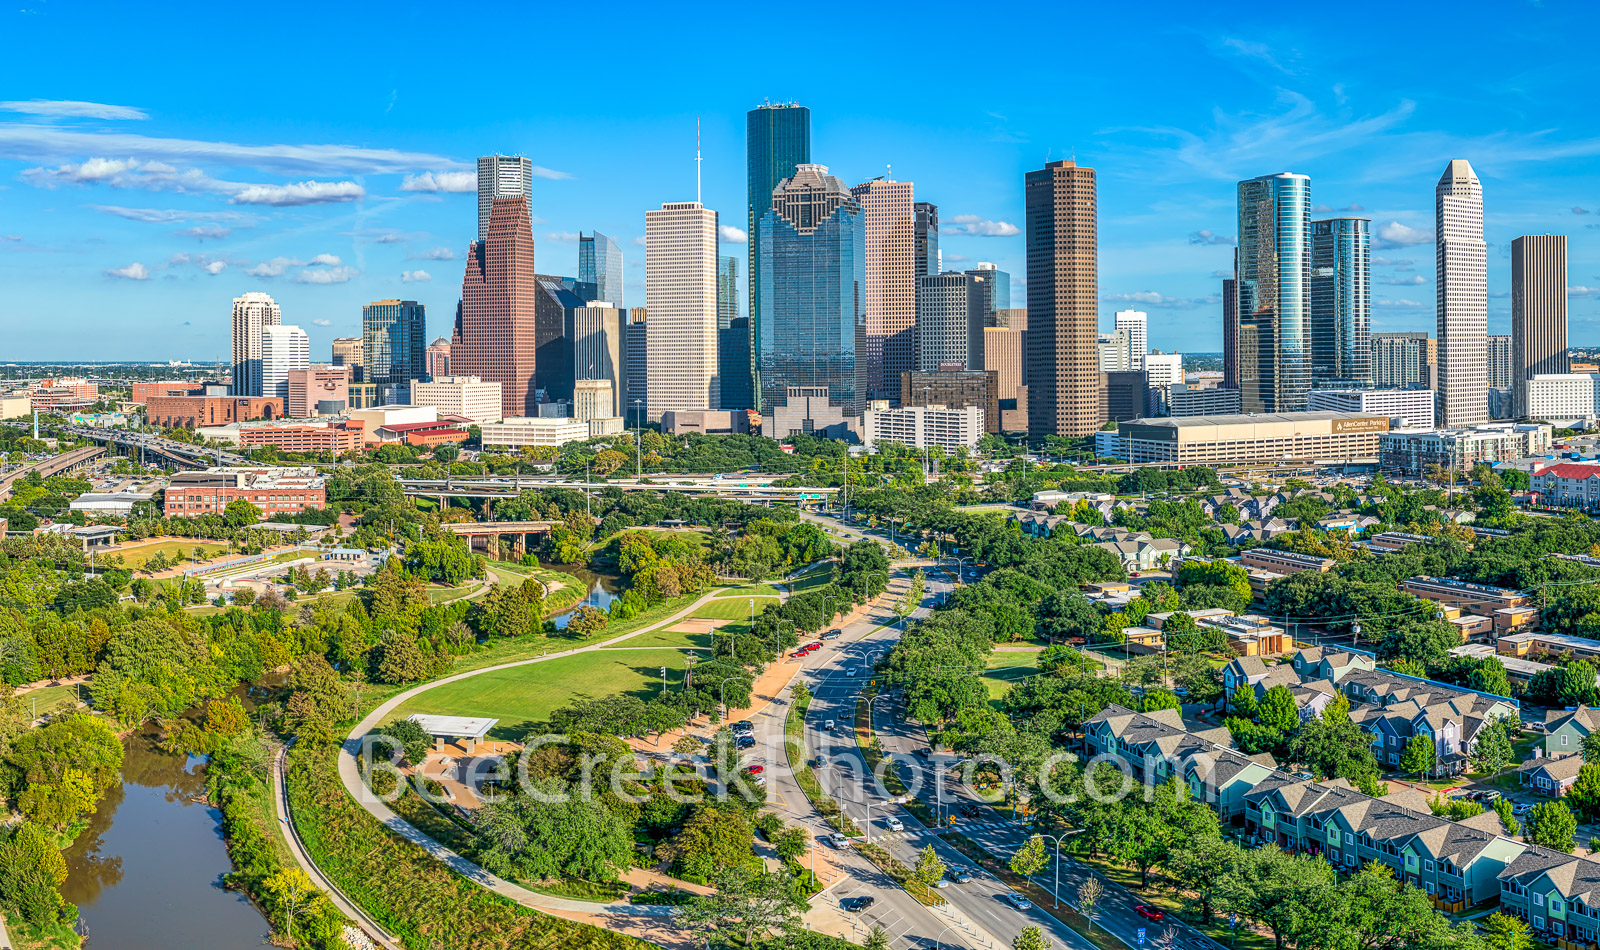 Houston skyline pictures, Houston skyline photos, images of houston skyline, Aerial Houston skyline, aerial,  Houston skyline, cityscape, cityscapes, city, park, skylines, downtown, skyscrapers, buffa, photo